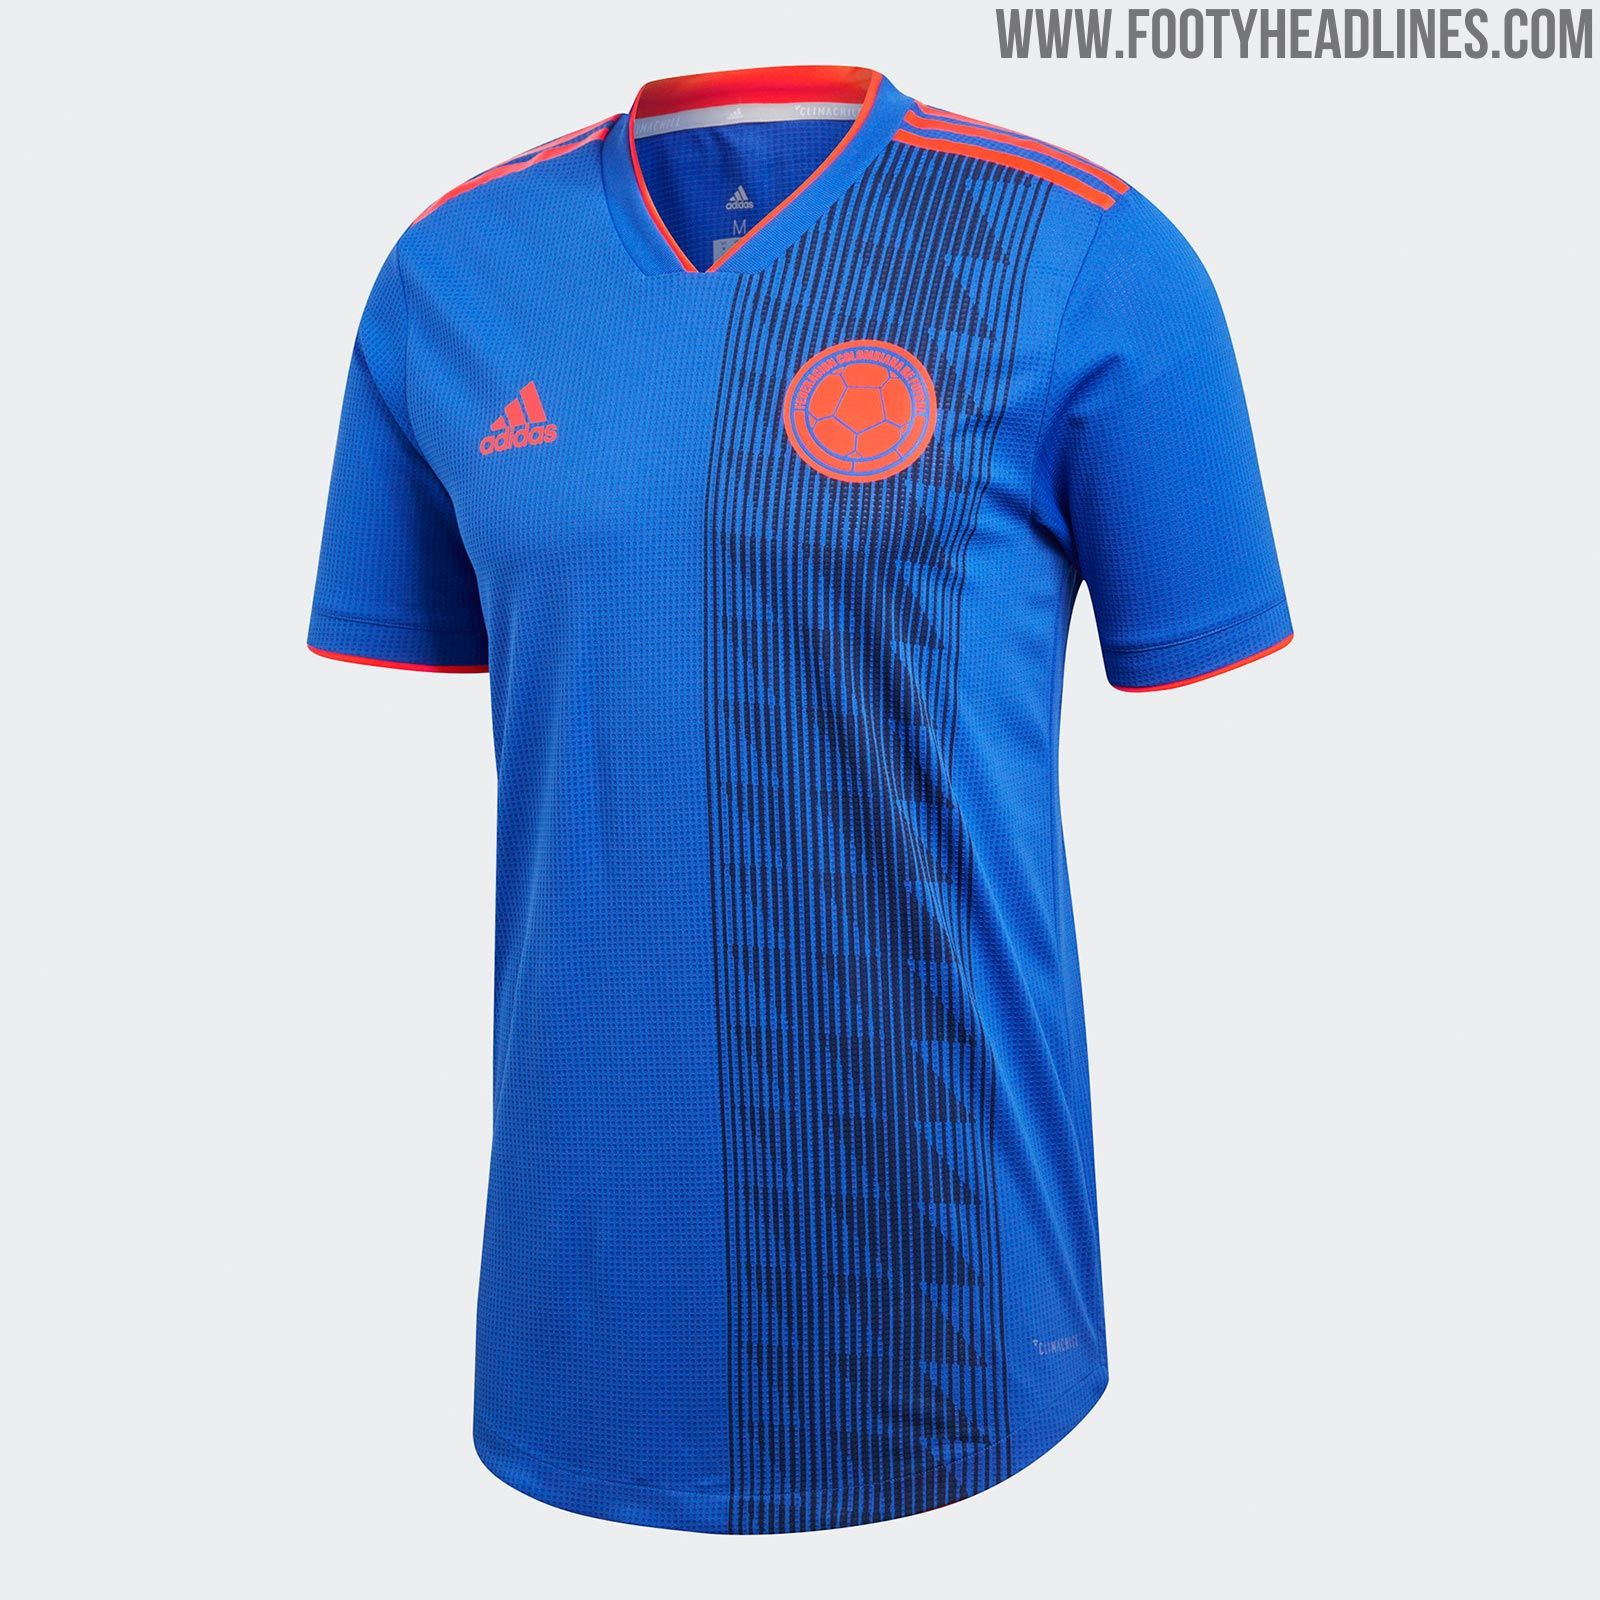 02d45a314 2018 World Cup Women Jersey Colombia Away Replica Blue Shirt 2018 World Cup  Women Jersey Colombia Away Replica Blue Shirt | Wholesale Personalized  [BFC947] ...